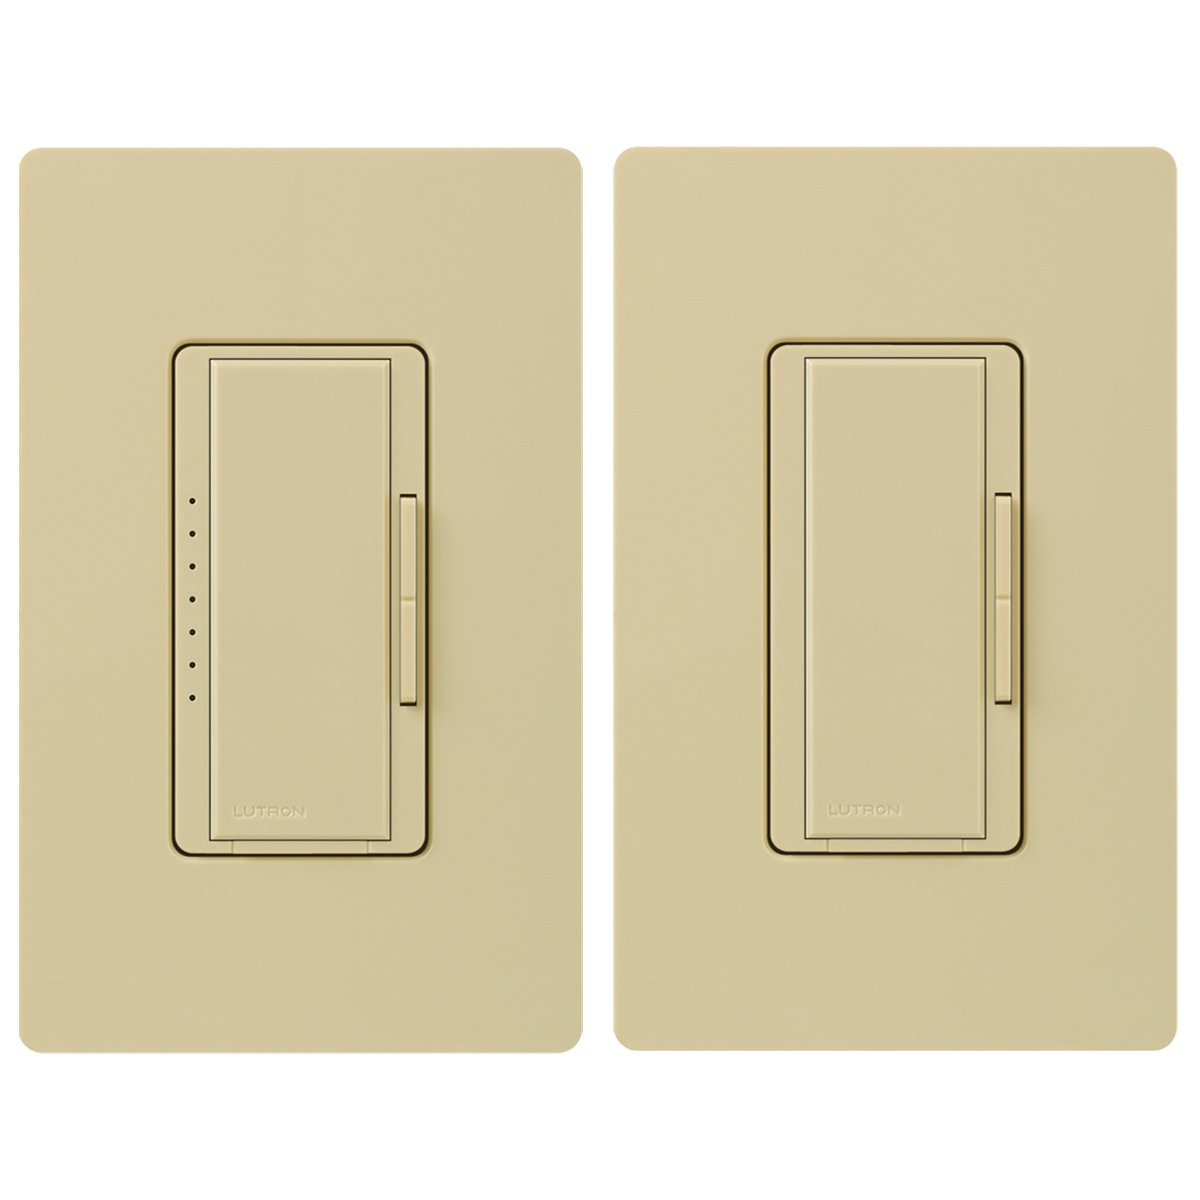 Lutron MACL-153M-RHW-IV Maestro 150-Watt Multi-Location CFL/LED Digital Dimmer Kit, Ivory